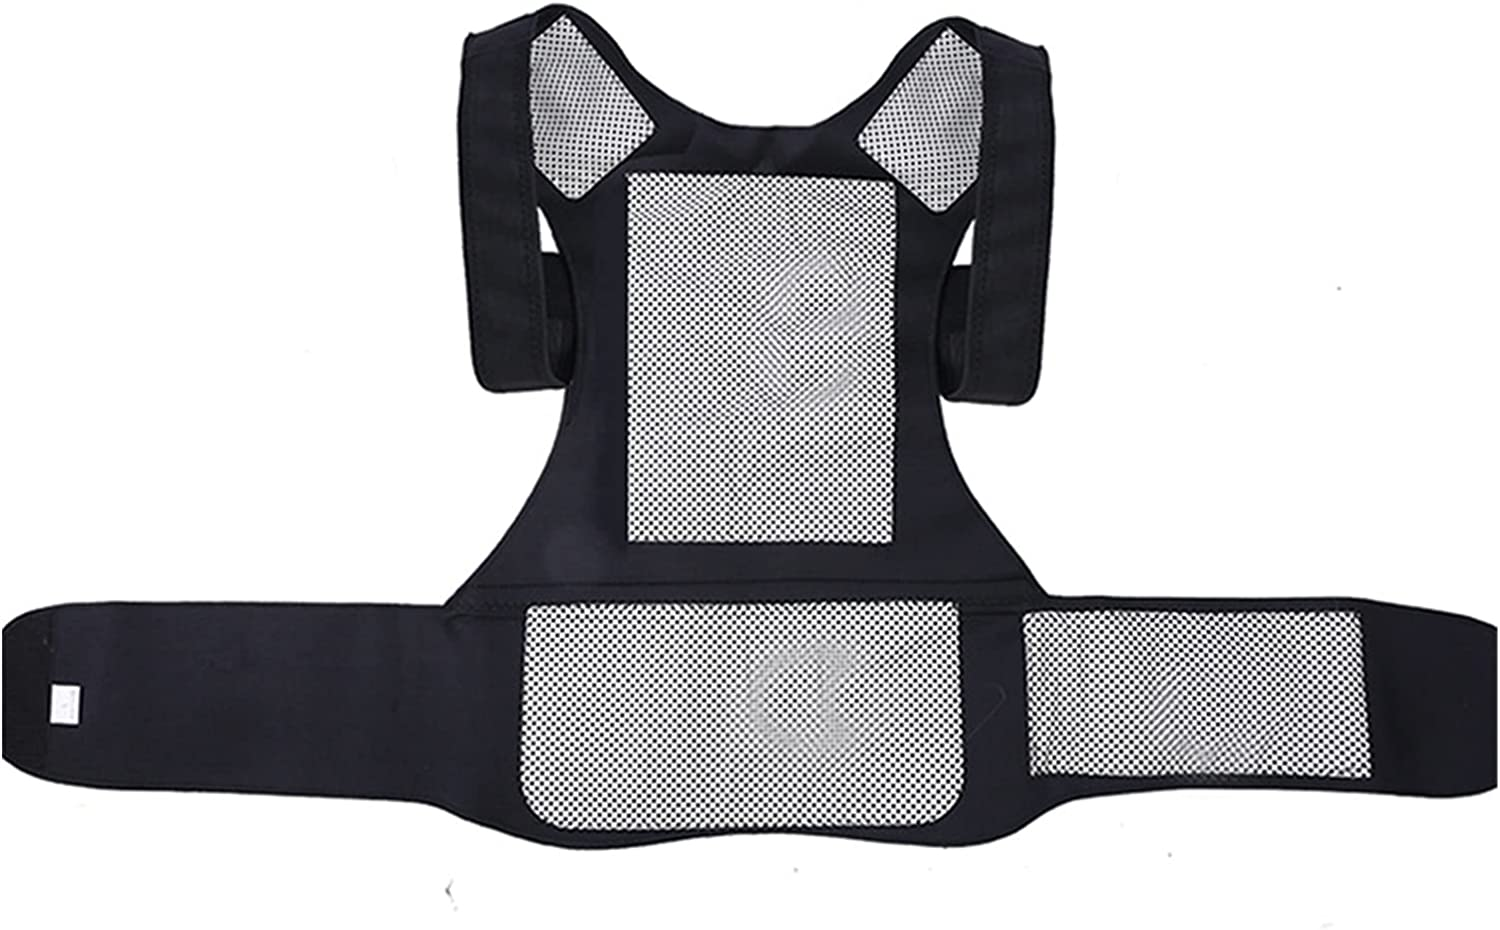 Breathable Max 58% OFF and Comfortable Support Belt Back Max 90% OFF for Braces Posture